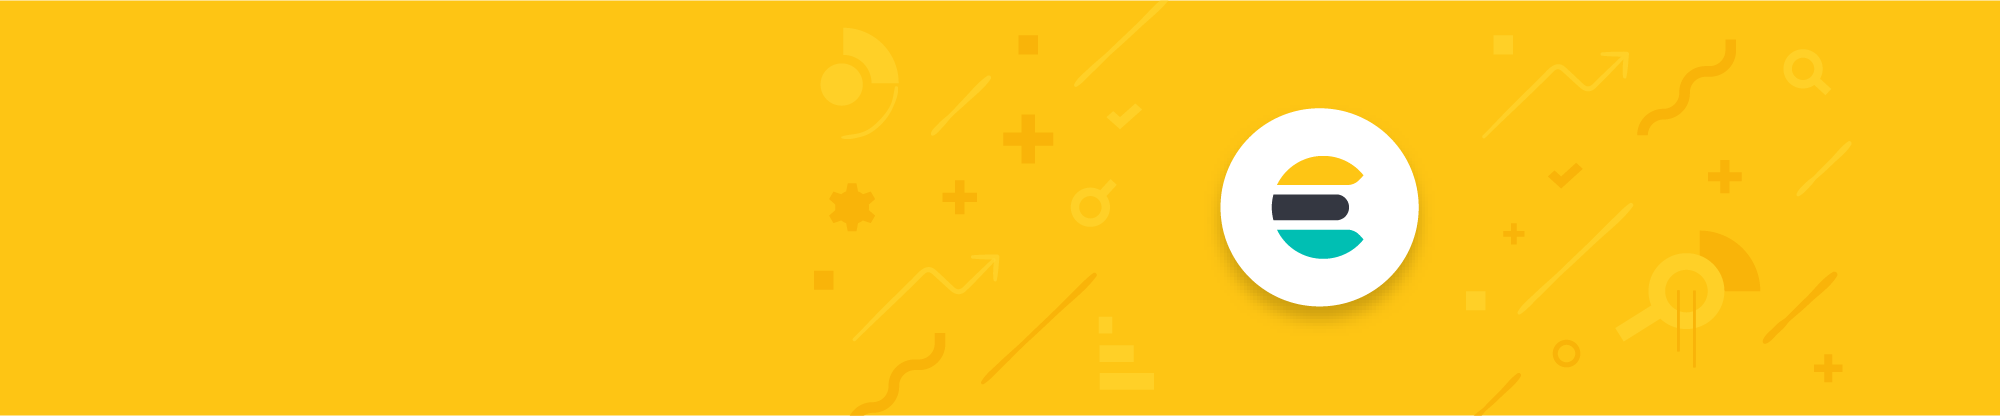 Introducing Our Elasticsearch Service Private Subscription